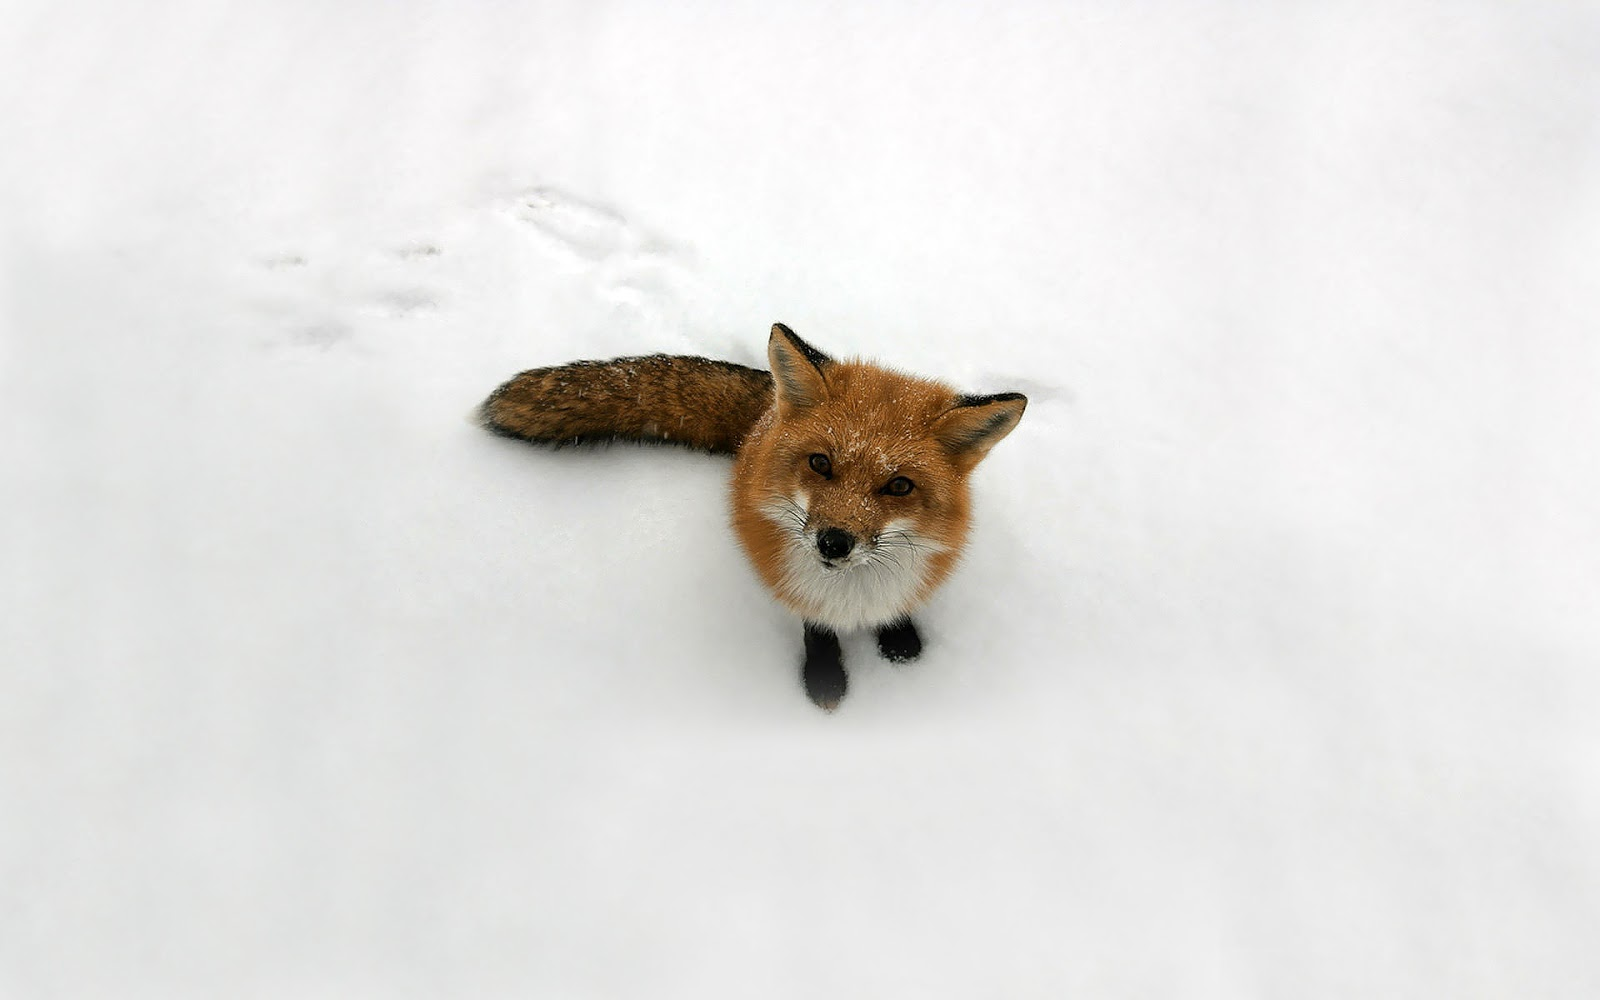 http://3.bp.blogspot.com/-PVNF2HgGzjc/US4a0dijTsI/AAAAAAAAHlU/JX9mG1h4Q5I/s1600/Red-Fox-Wallpaper+04.jpg